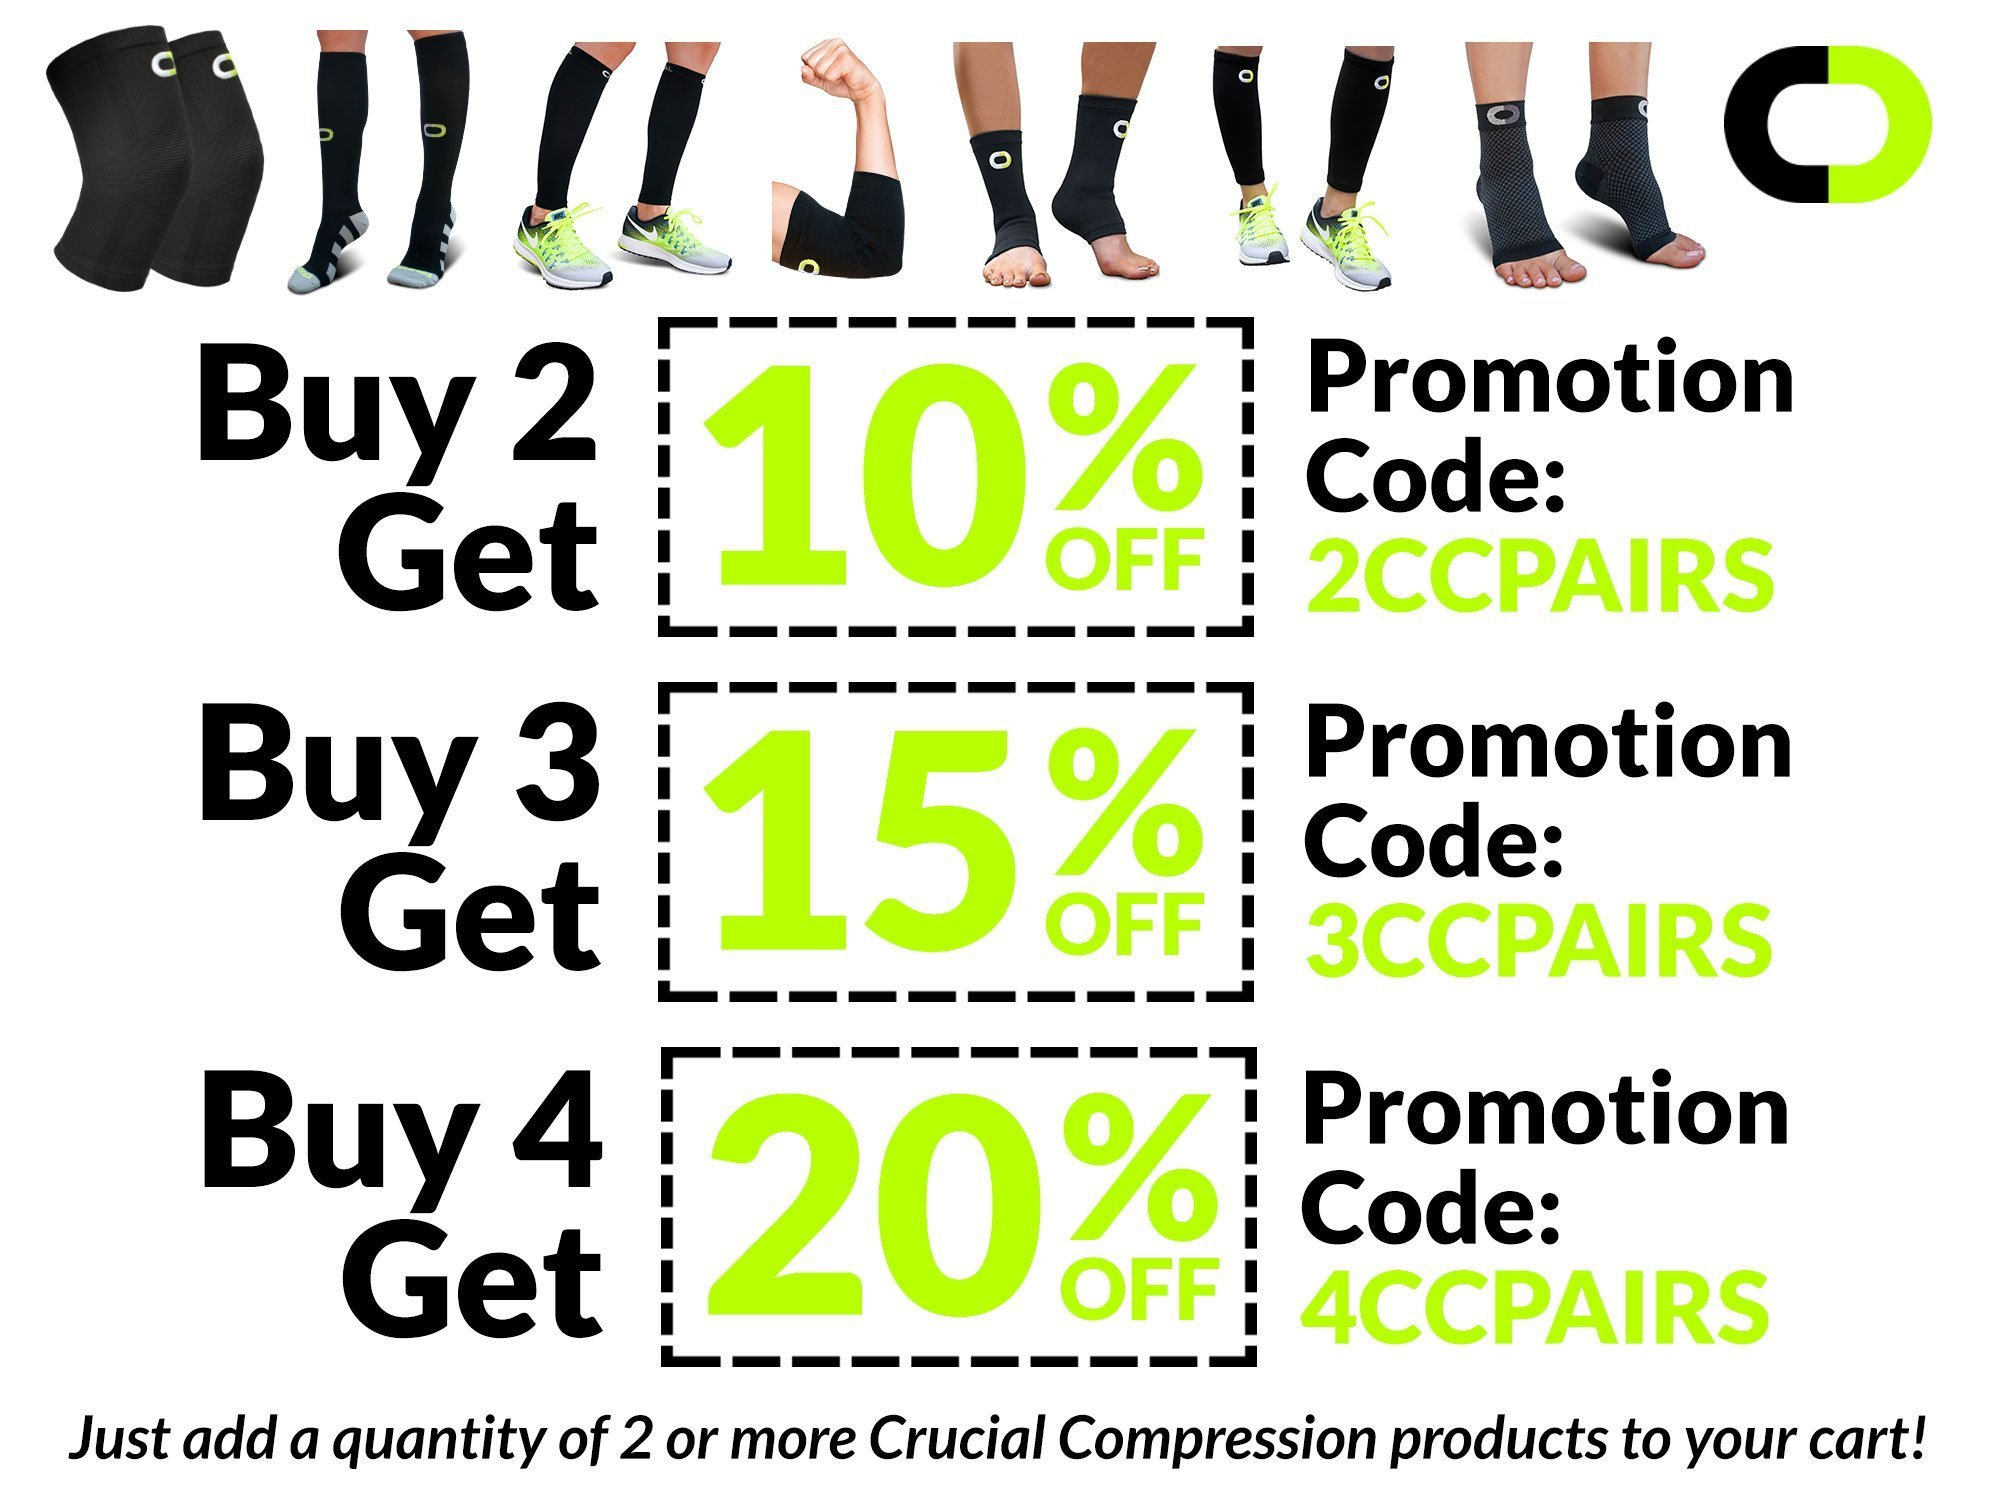 Ankle Brace Compression Sleeve for Men & Women (1 Pair) – BEST Ankle Support Braces for Pain Relief, Injury Recovery, Swelling, Sprain, Achilles Tendon Support, Heel Spur, Plantar Fasciitis Foot Sock by Crucial Compression (Image #7)